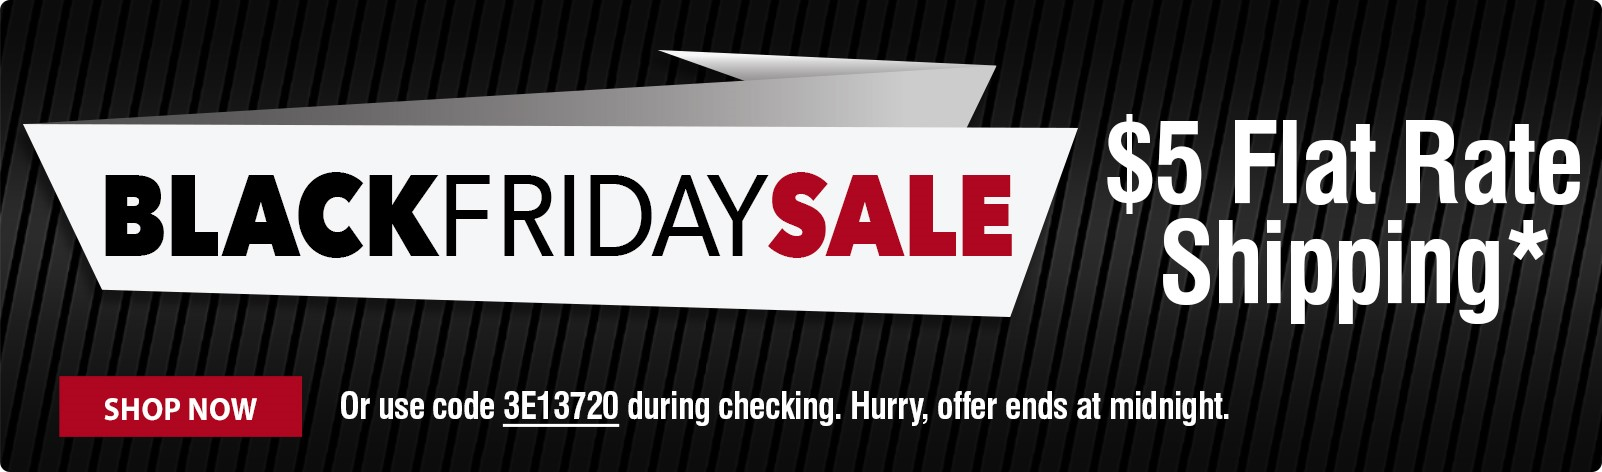 Black Friday Sale - $5 Flat Rate Ground Shipping! Hurry, shop now.